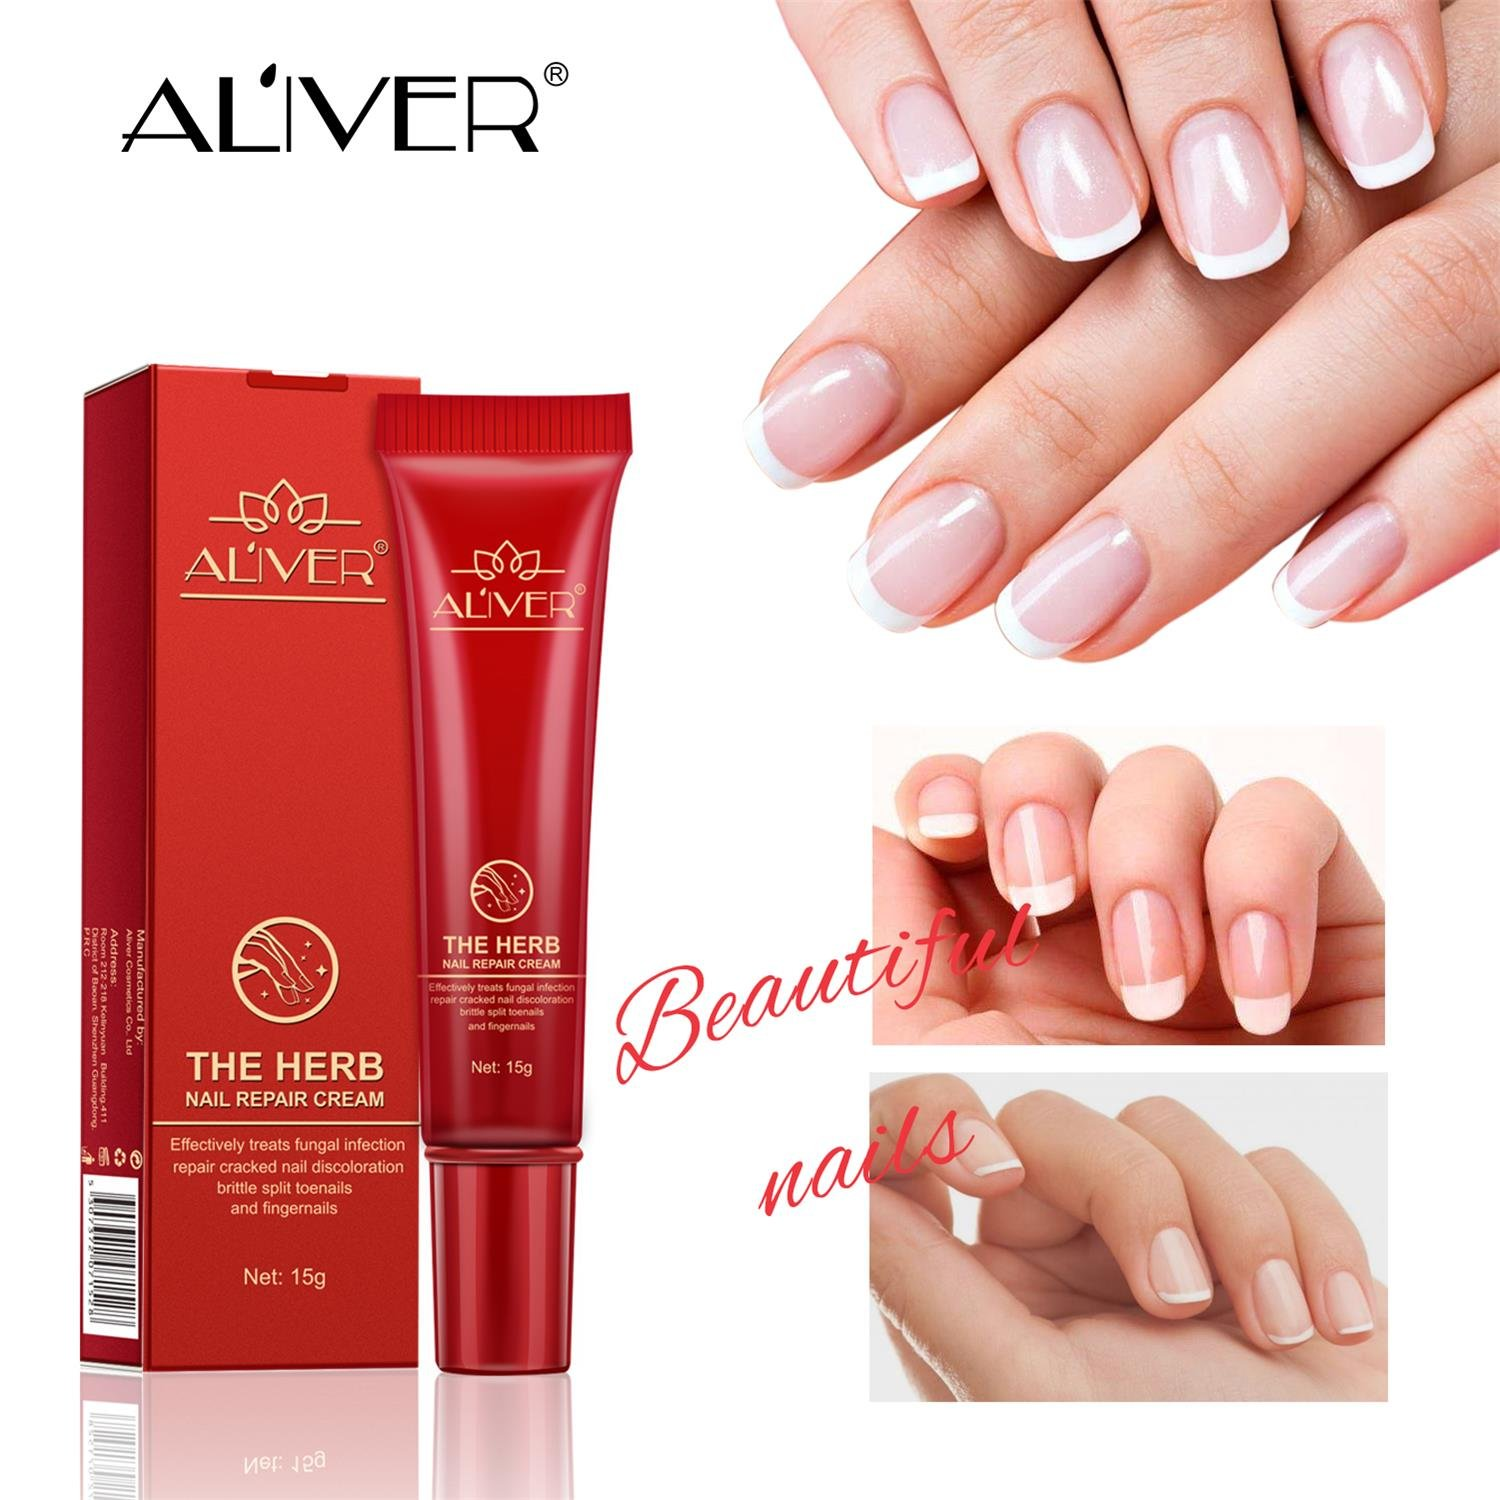 Nail Fungal Treatment, Aliver The Herb Foot Nail Repair Cream Protector, Nail Care Treatment of Anti-Fungal Cream, Effective Against Nail Fungus, Restores the Healthy Appearance of Nails (15g) by ALIVER (Image #7)